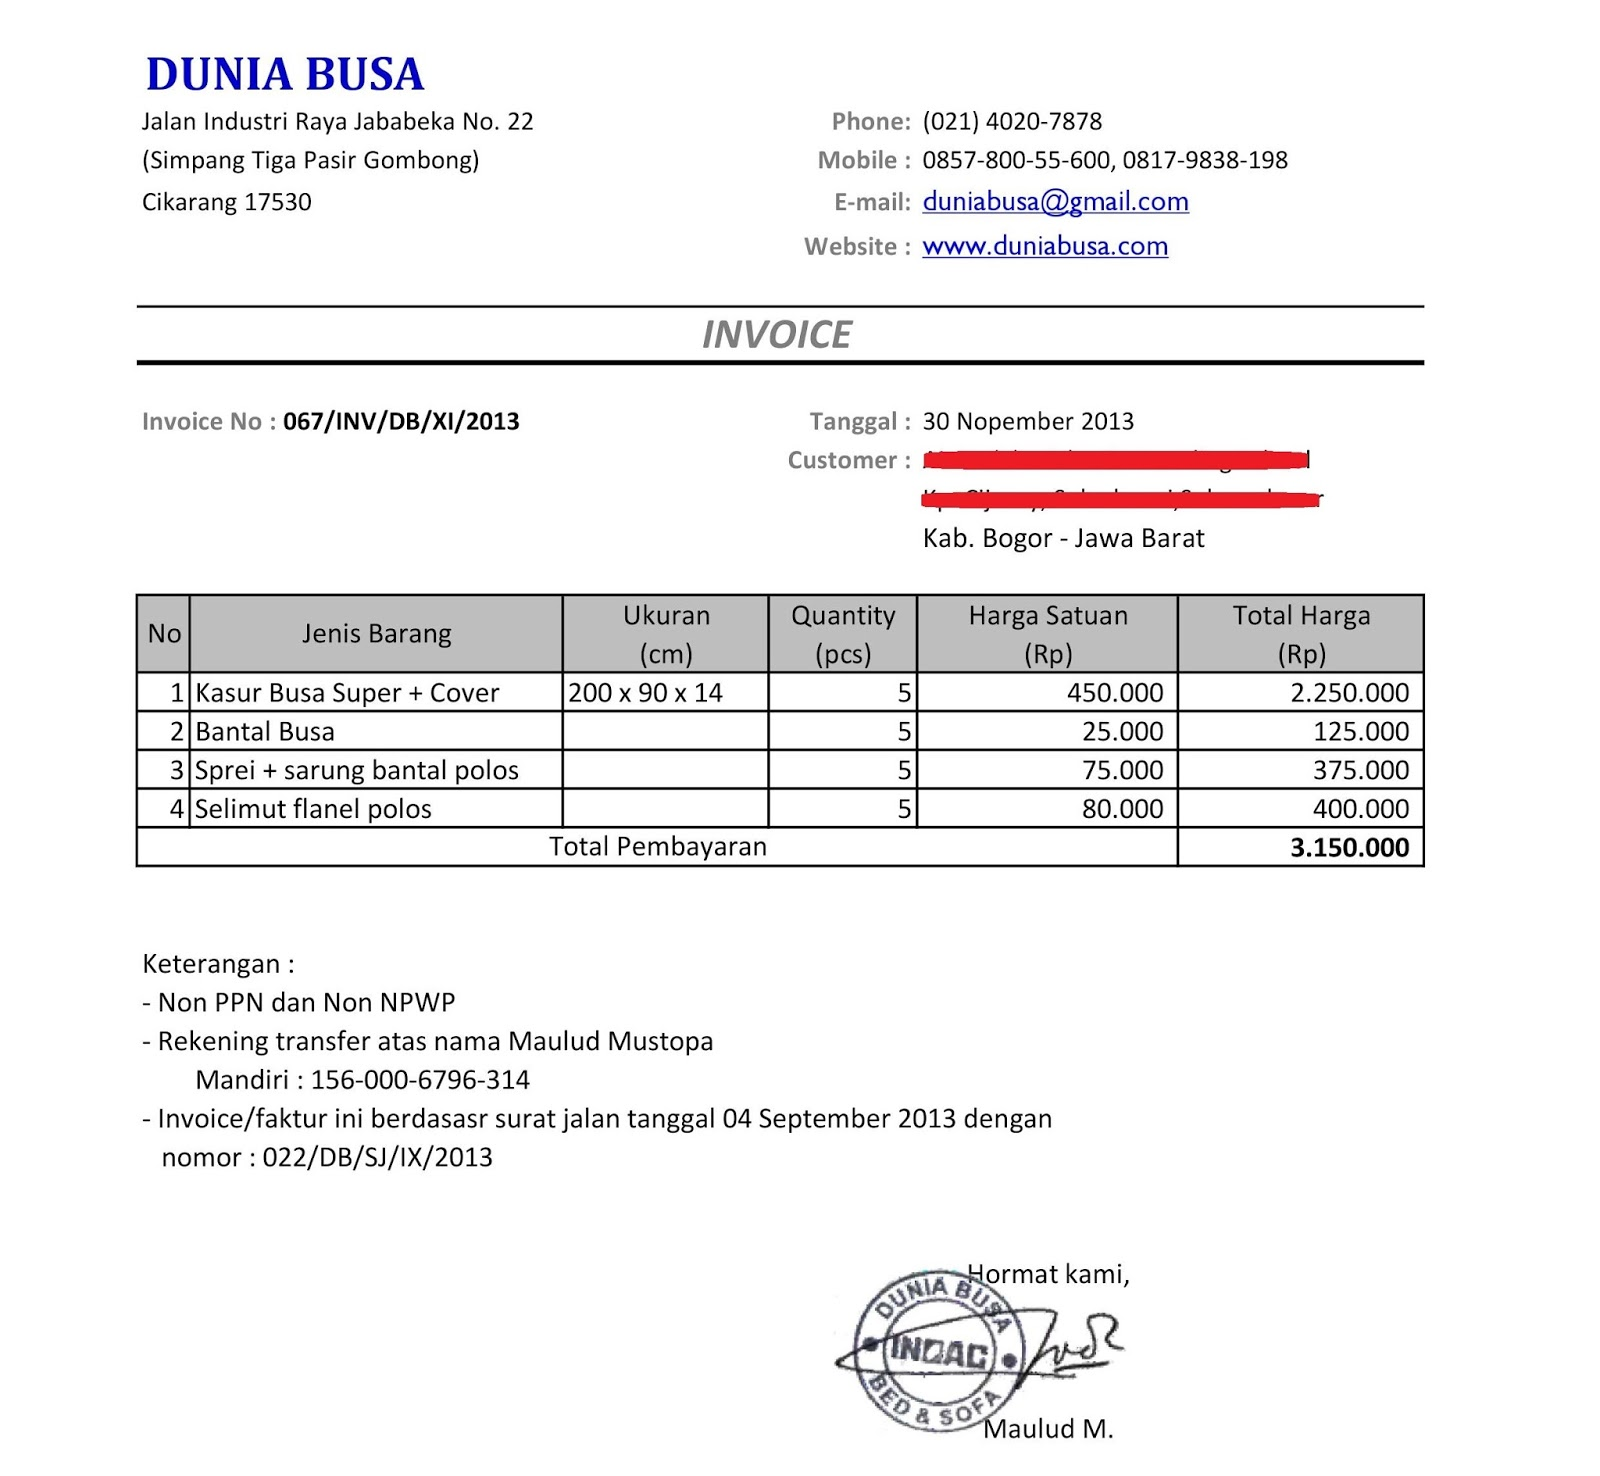 Aldiablosus  Pleasant Free Invoice Online  Create Invoice Online  Invoice Template  With Exquisite Contoh Format Invoice Atau Surat Tagihan  Brankas Arsip  Free Invoice Online With Nice Template For Invoice For Services Also Billing Invoices Free Printable In Addition Reconciliation Of Invoices And Google Invoices Templates Free As Well As Sample Invoices In Word Format Additionally Invoice Software Torrent From Sklepco With Aldiablosus  Exquisite Free Invoice Online  Create Invoice Online  Invoice Template  With Nice Contoh Format Invoice Atau Surat Tagihan  Brankas Arsip  Free Invoice Online And Pleasant Template For Invoice For Services Also Billing Invoices Free Printable In Addition Reconciliation Of Invoices From Sklepco